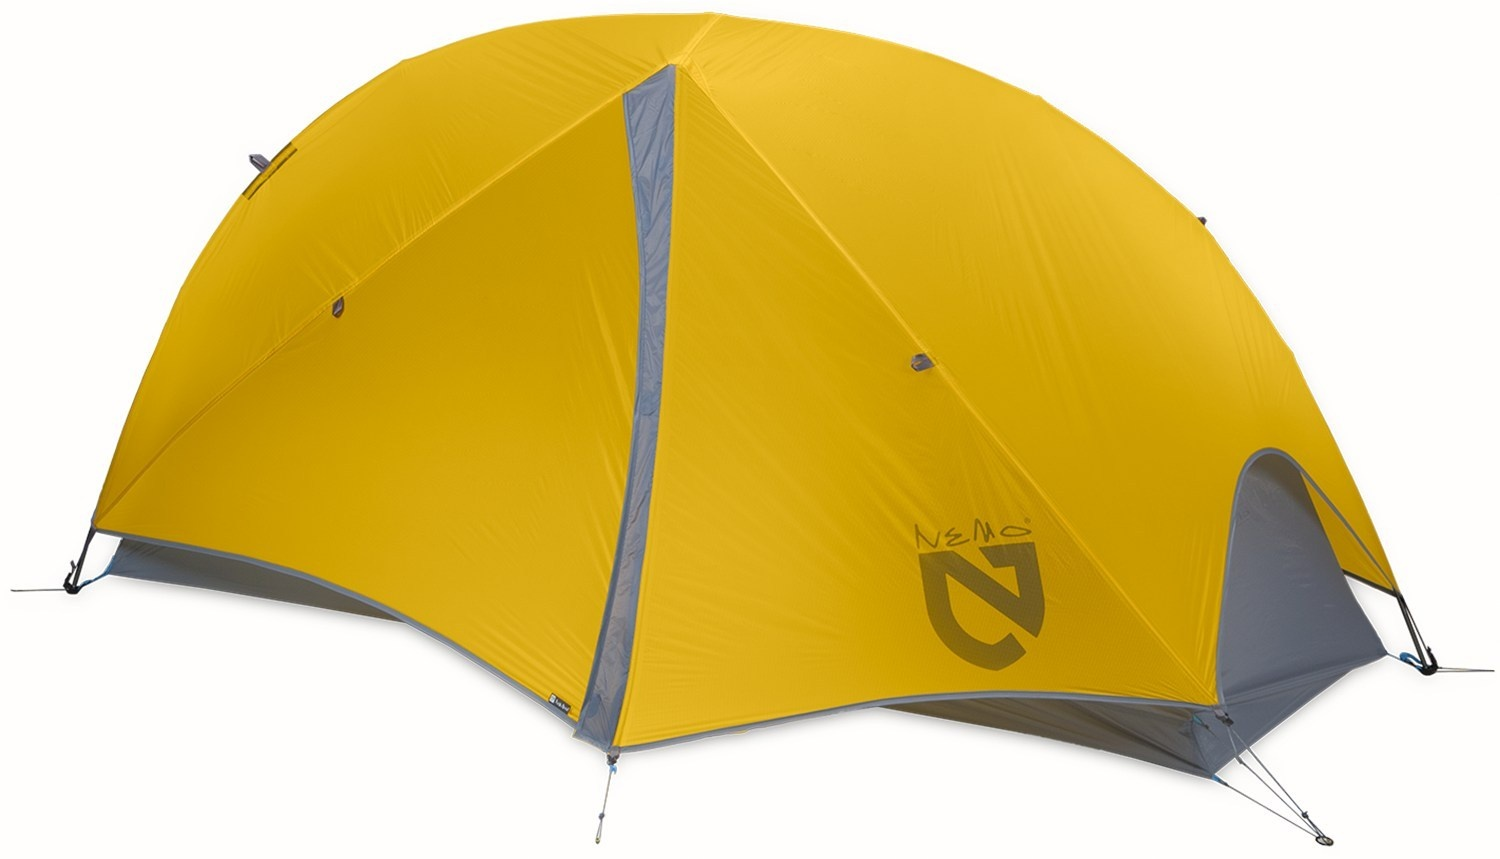 sc 1 st  Fishpond & Nemo Tent Sports \u0026 Outdoors: Buy Online from Fishpond.co.nz